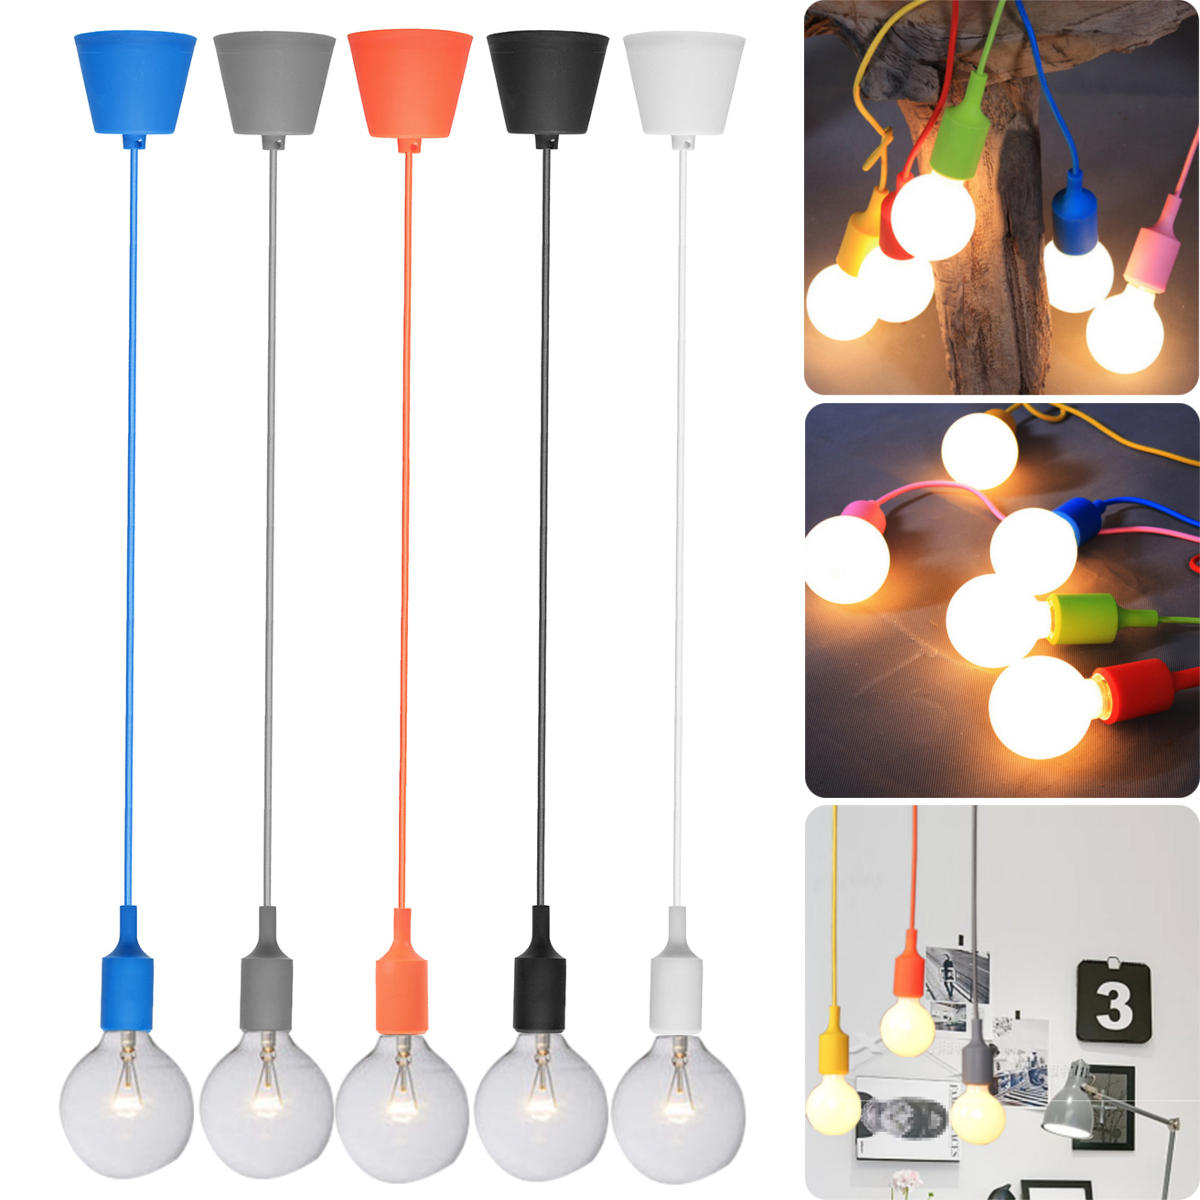 60W Modern Ceiling Fabric Cable Pendant Light Holder E27 Bulb Lamp Fitting, Banggood  - buy with discount